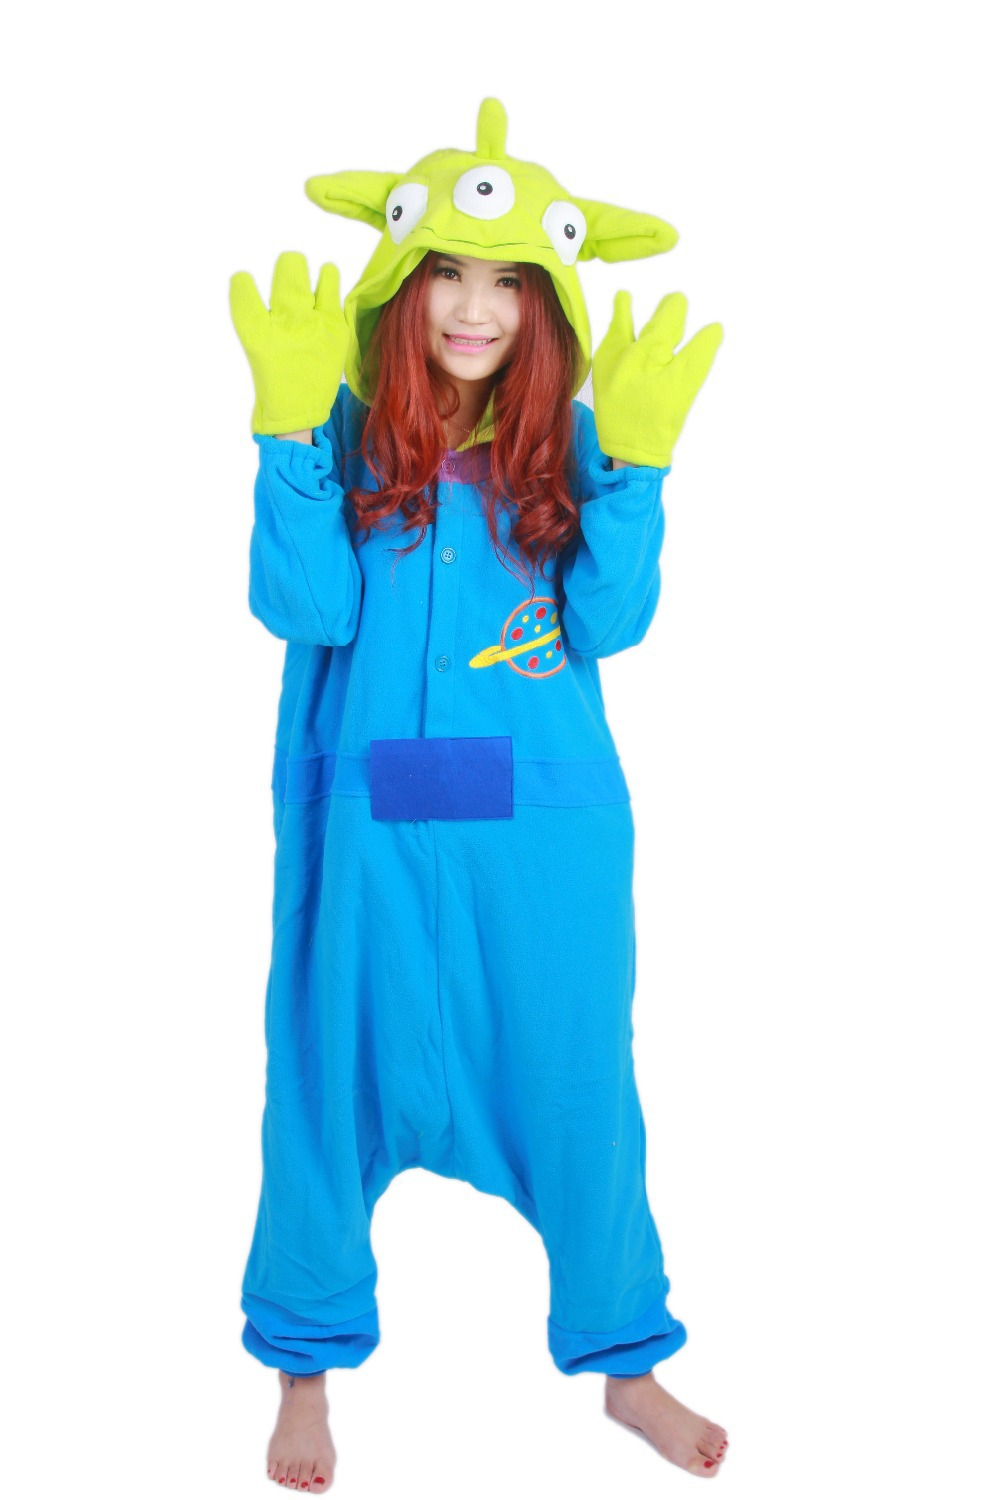 Little Green Man Squeeze Toy Story Aliens Monster Onesie All In One Cosplay Costumes Pajamas Women Men Female Jumpsuit Hoodies-in Boys Costumes from Novelty ...  sc 1 st  AliExpress.com & Little Green Man Squeeze Toy Story Aliens Monster Onesie All In One ...